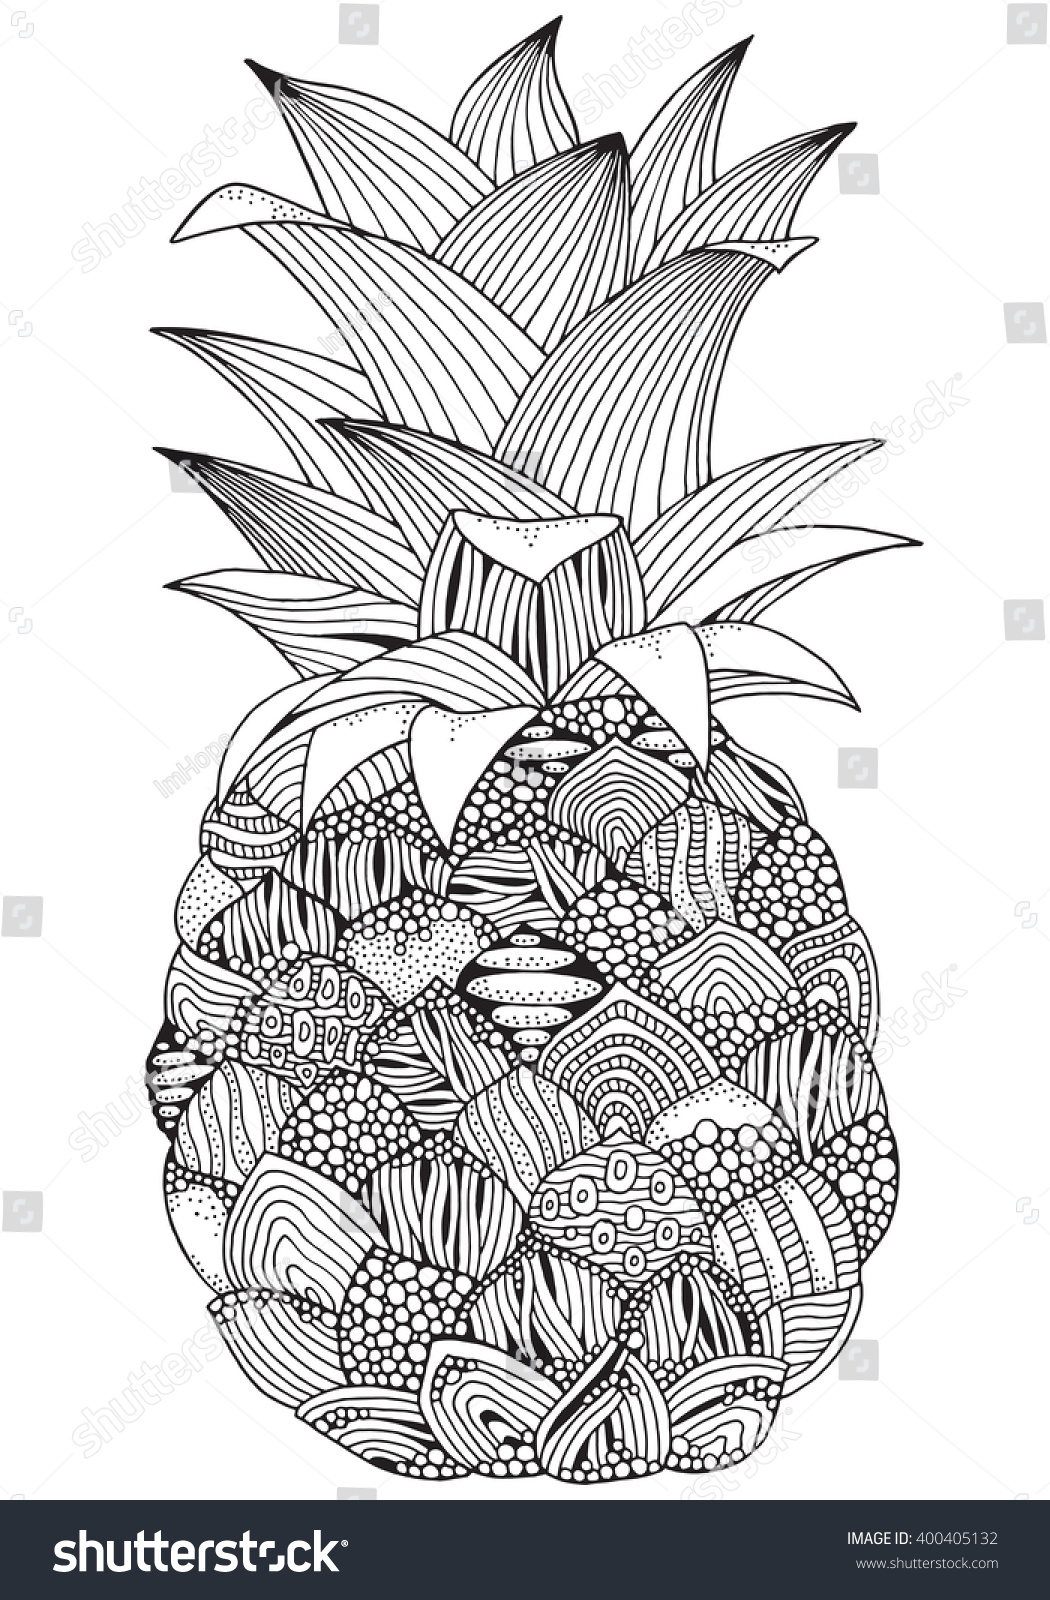 Artistic Pineapple On White Background